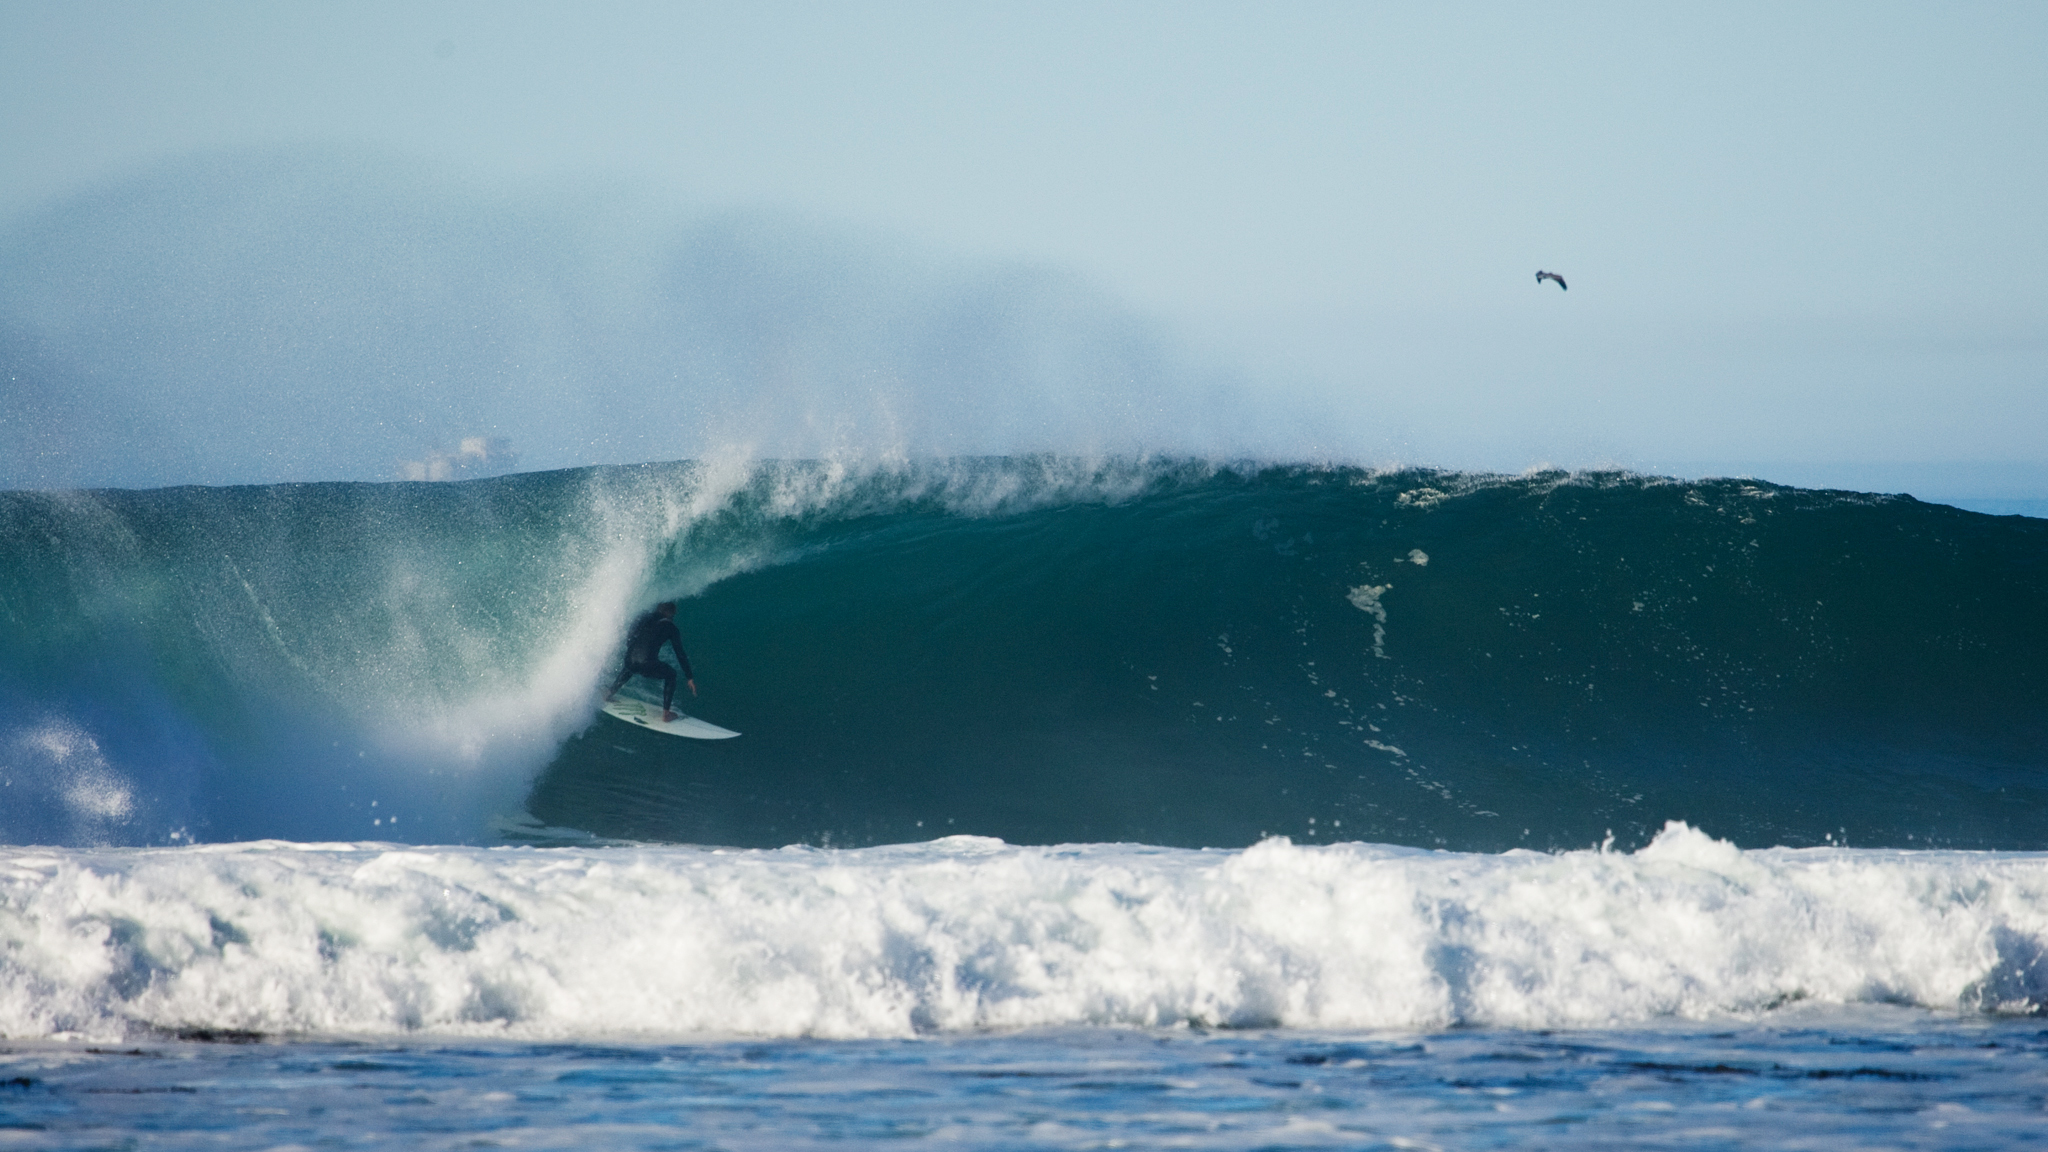 There are a lot of mysto, secret spots once one ventures north of Santa Barbara. Years removed from his world tour career, Bobby Martinez knows all of them.